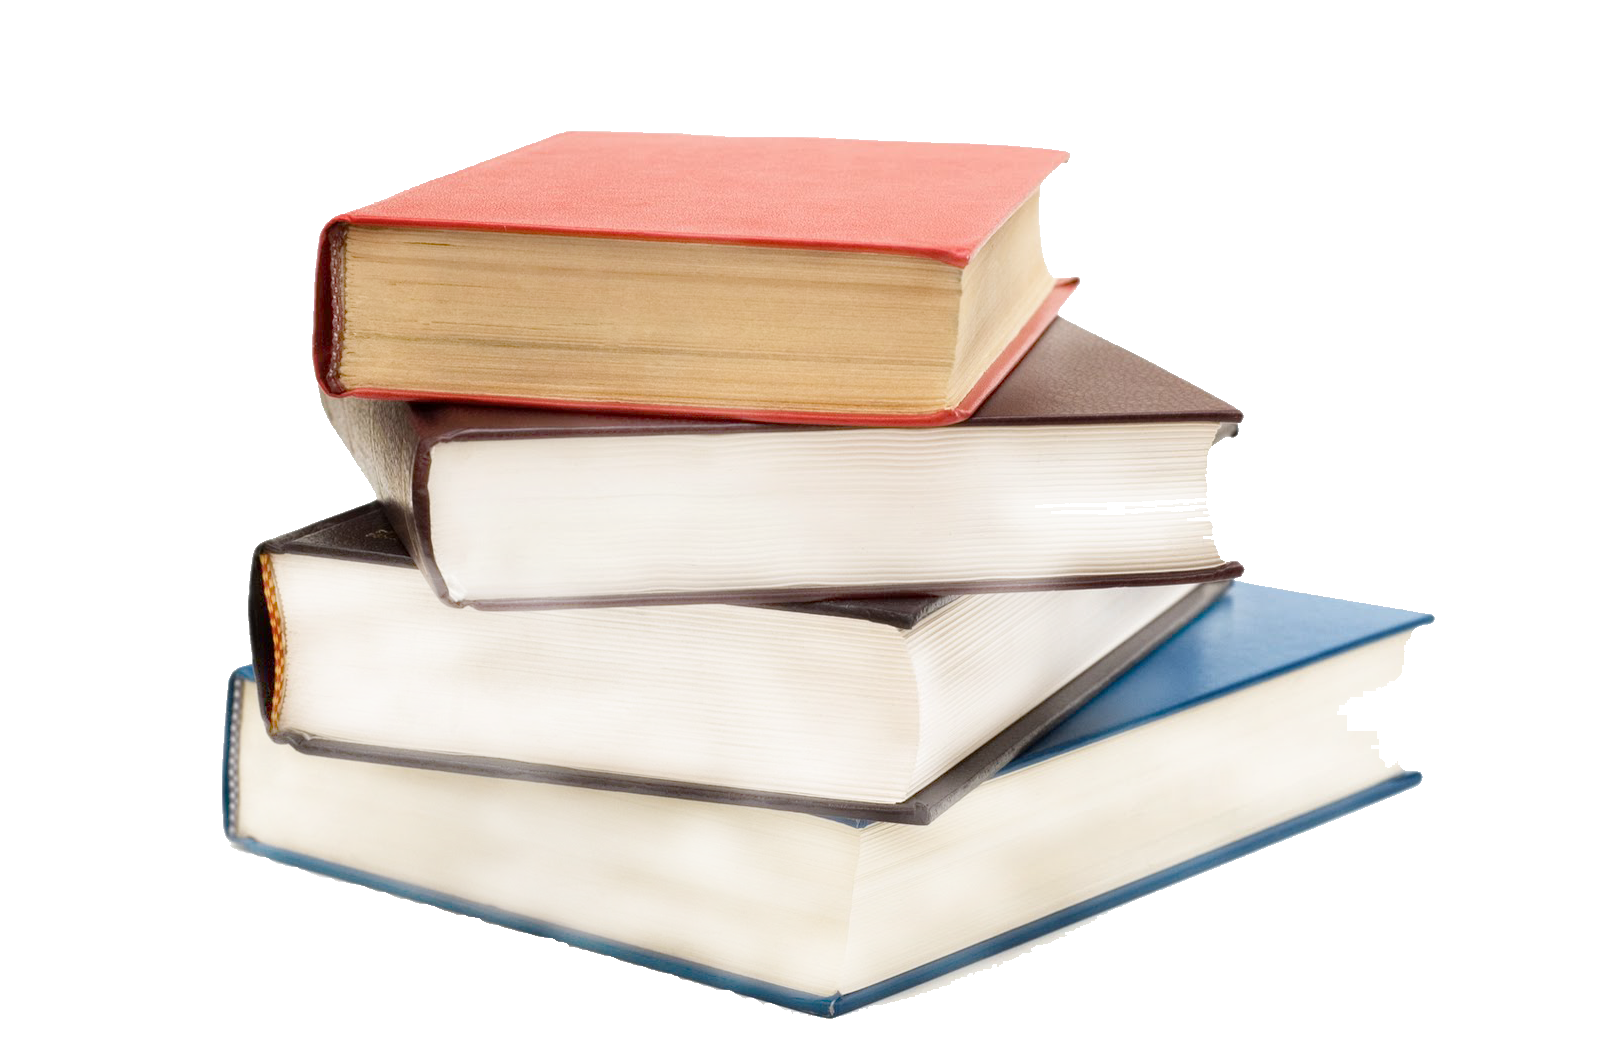 Book PNG - 23993